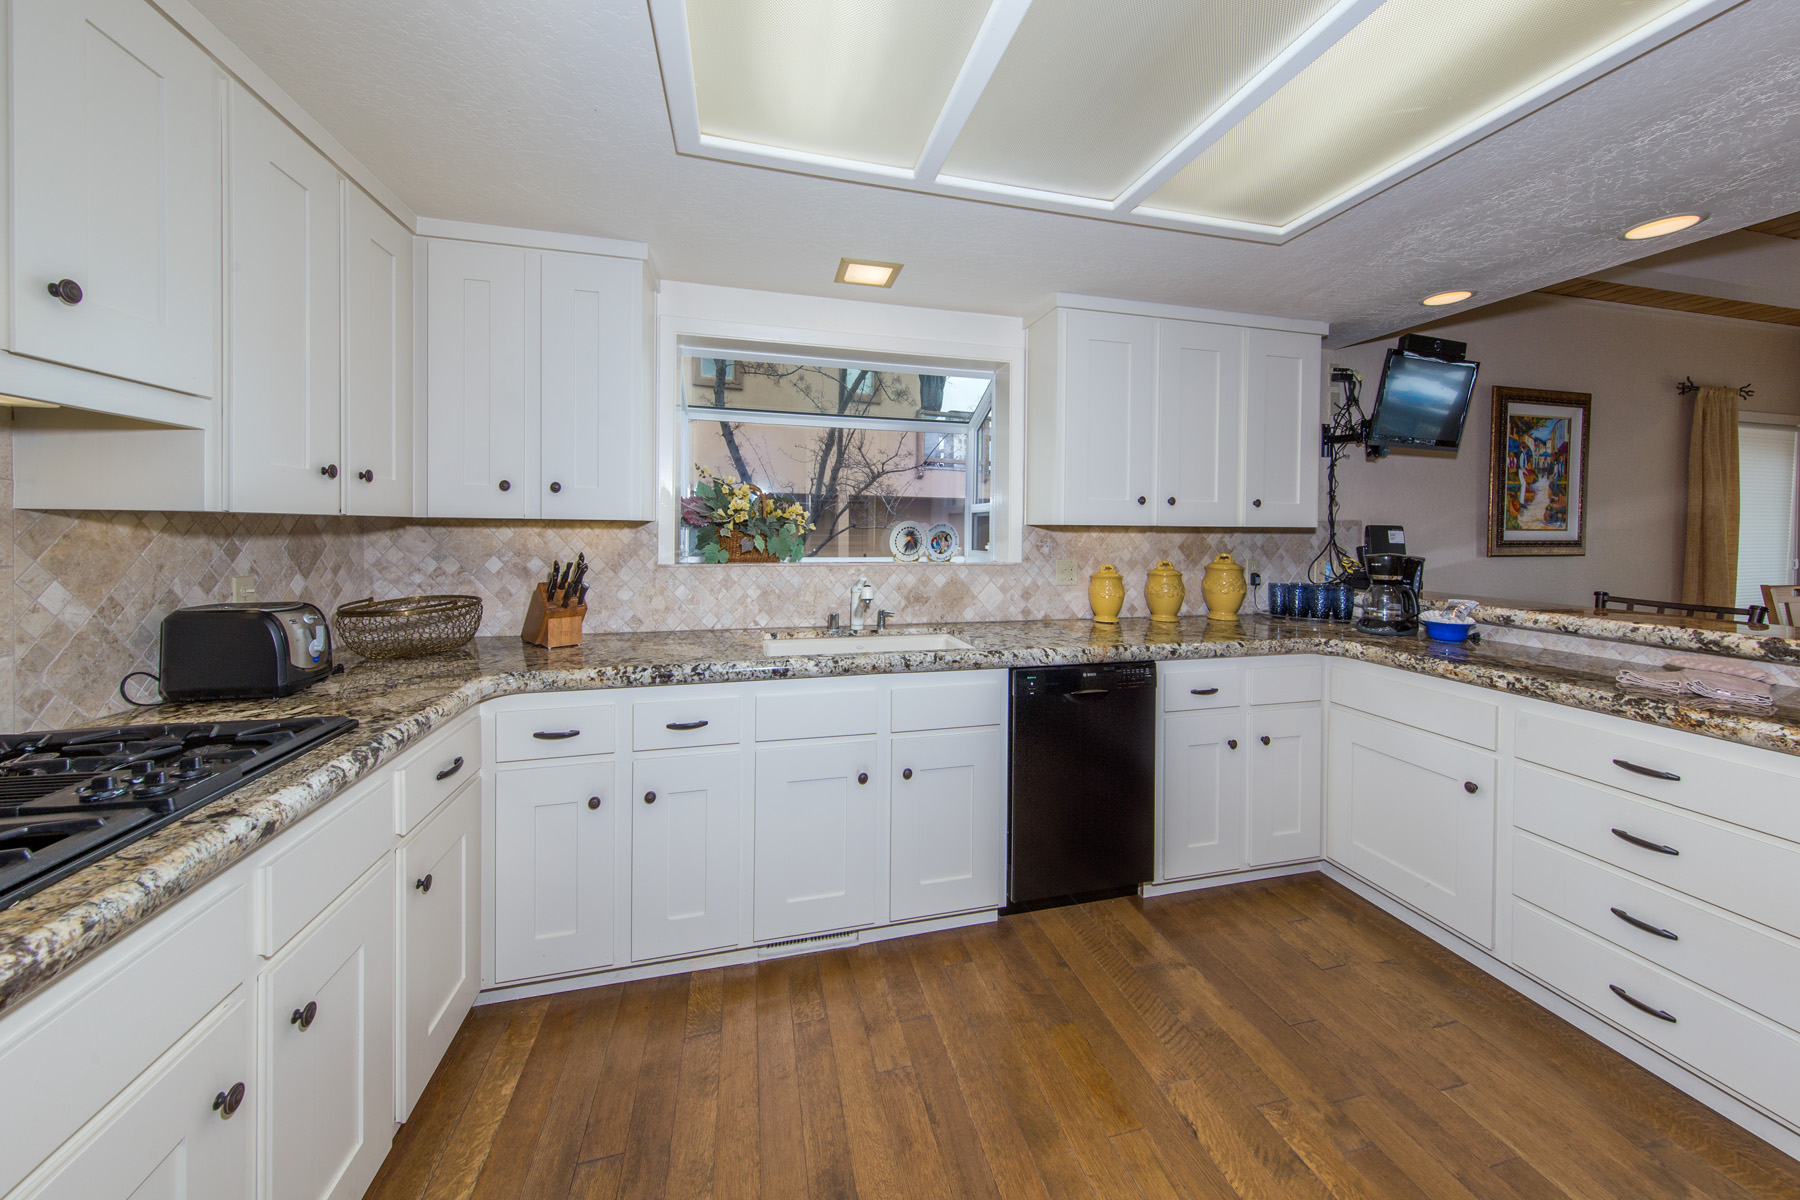 full equipped and modern kitchen to have the best start of your